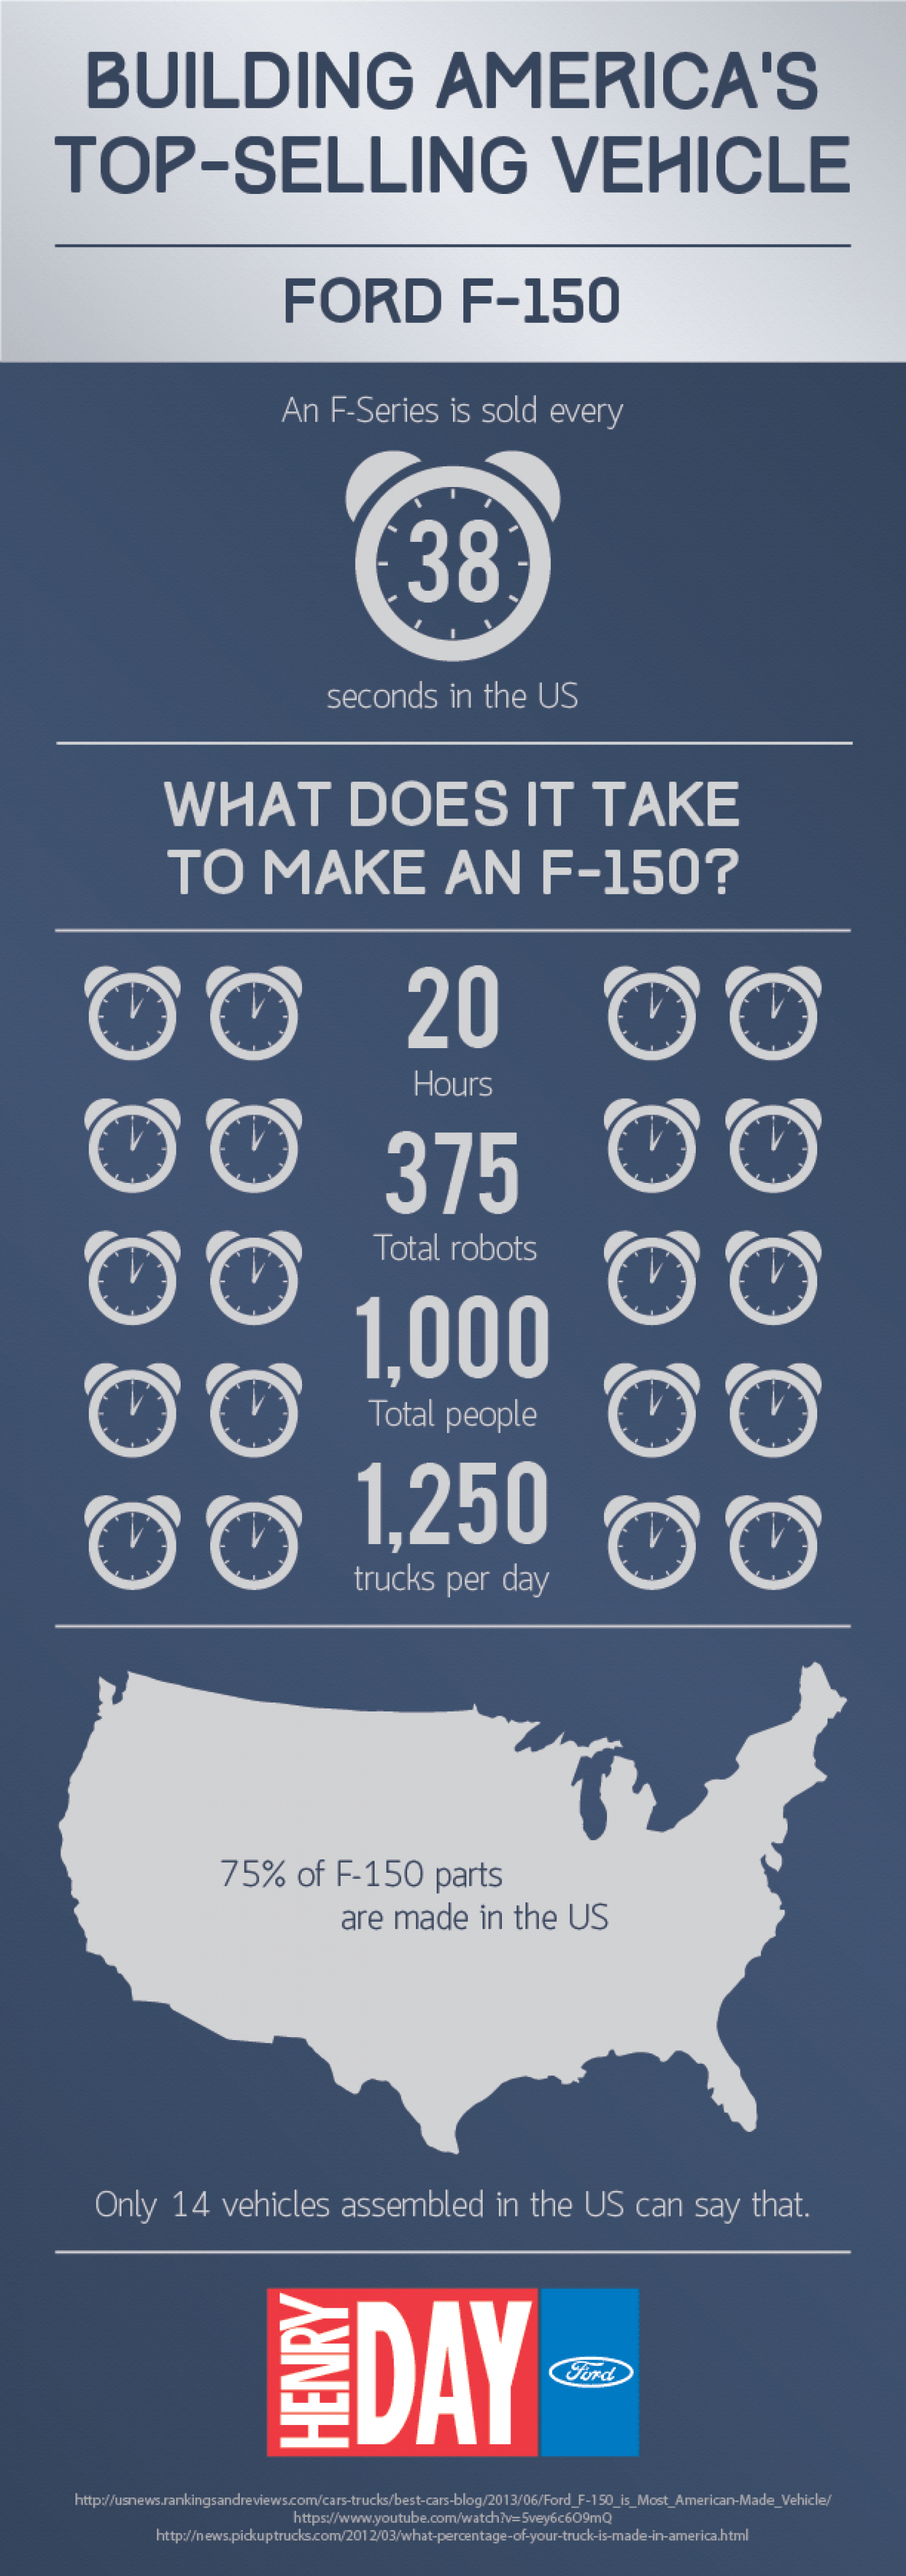 Building an F-150 Infographic